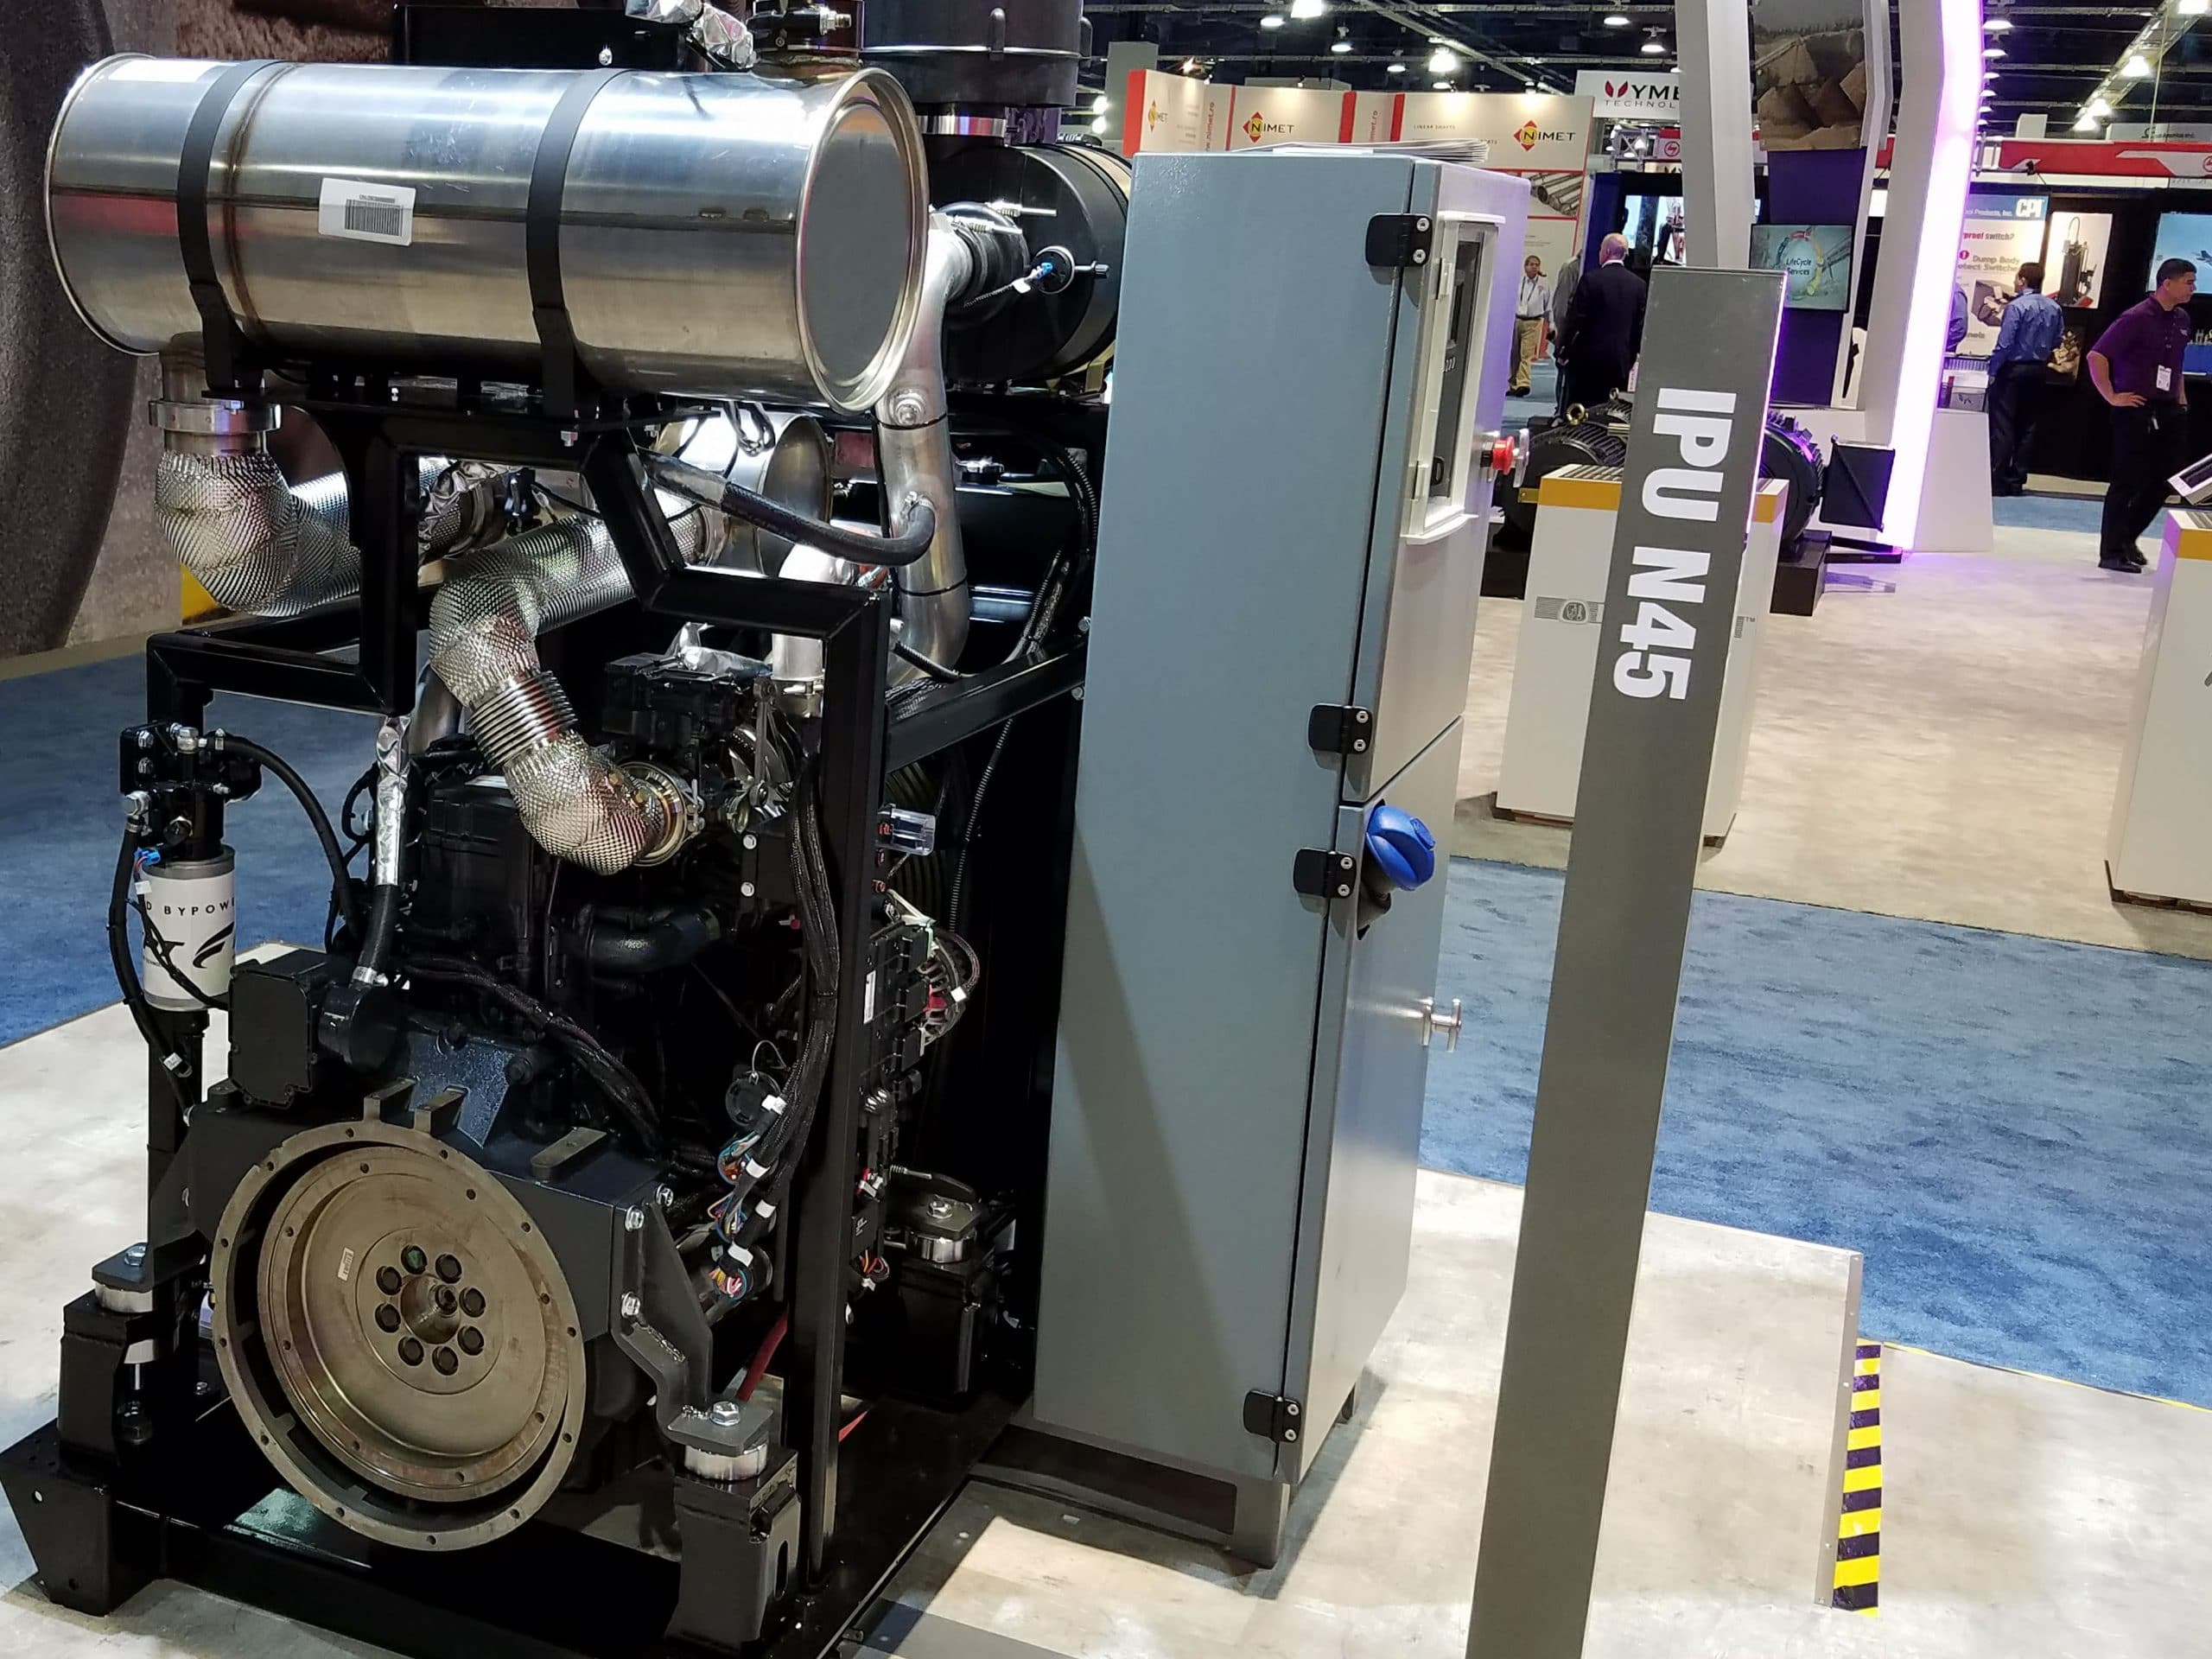 Grizzly Industrial Power Unit powered by the FPT N45